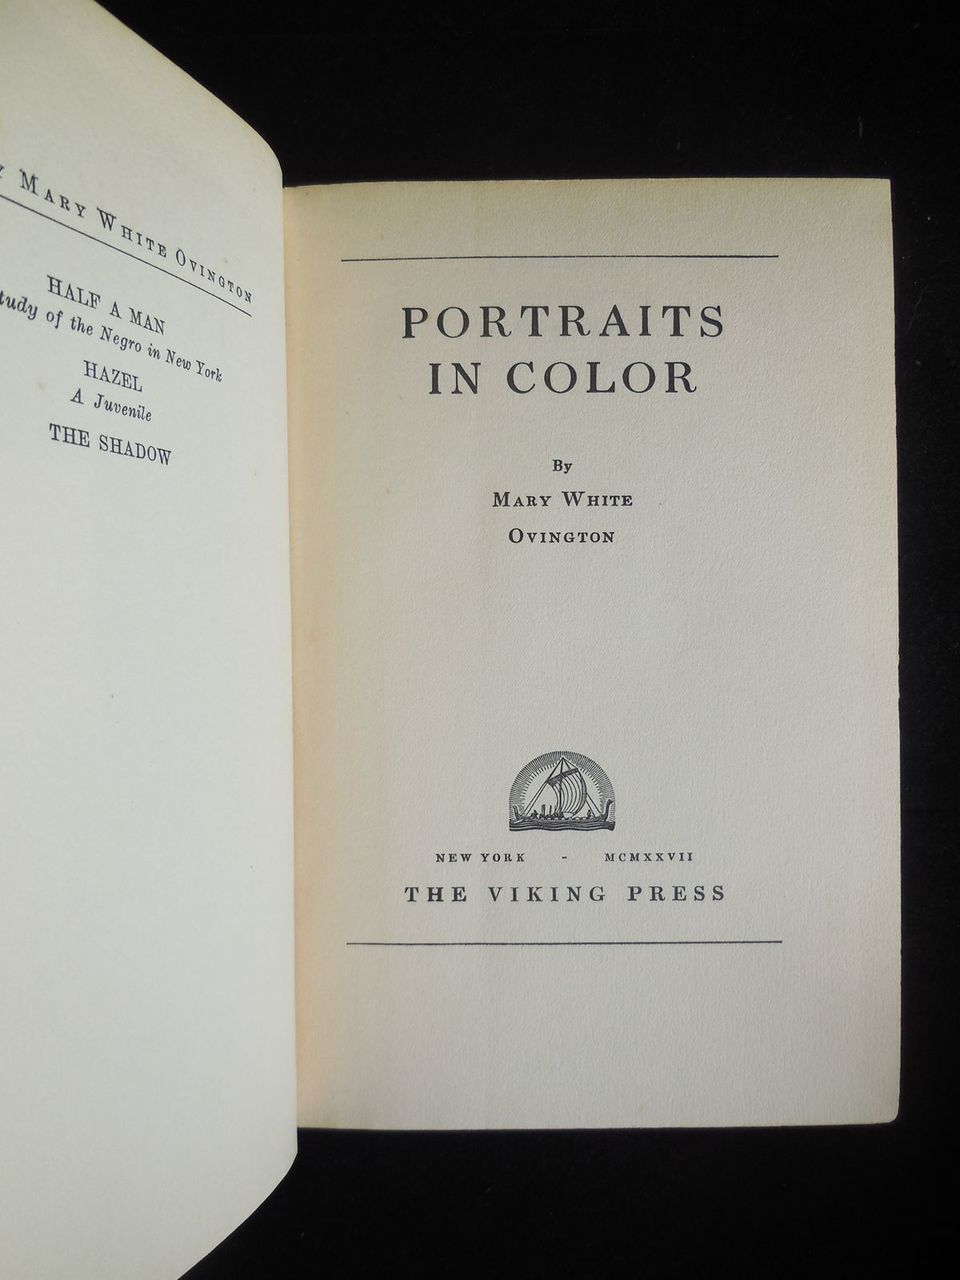 PORTRAITS IN COLOR, by Mary White Ovington - 1927 [1st Ed]